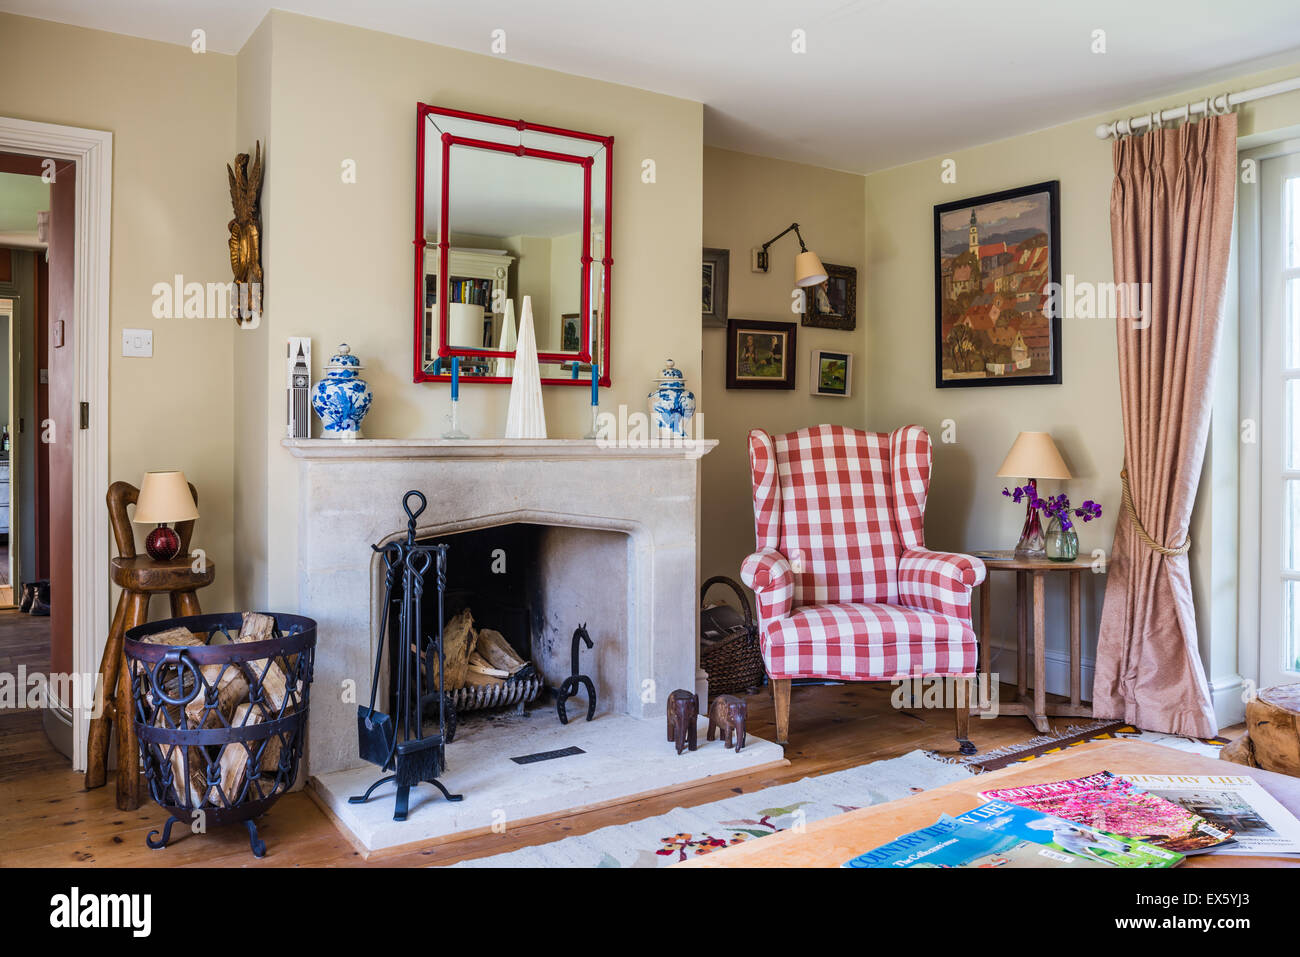 Gingham wingback chair in sitting room with stone fireplace and Murano glass mirror - Stock Image